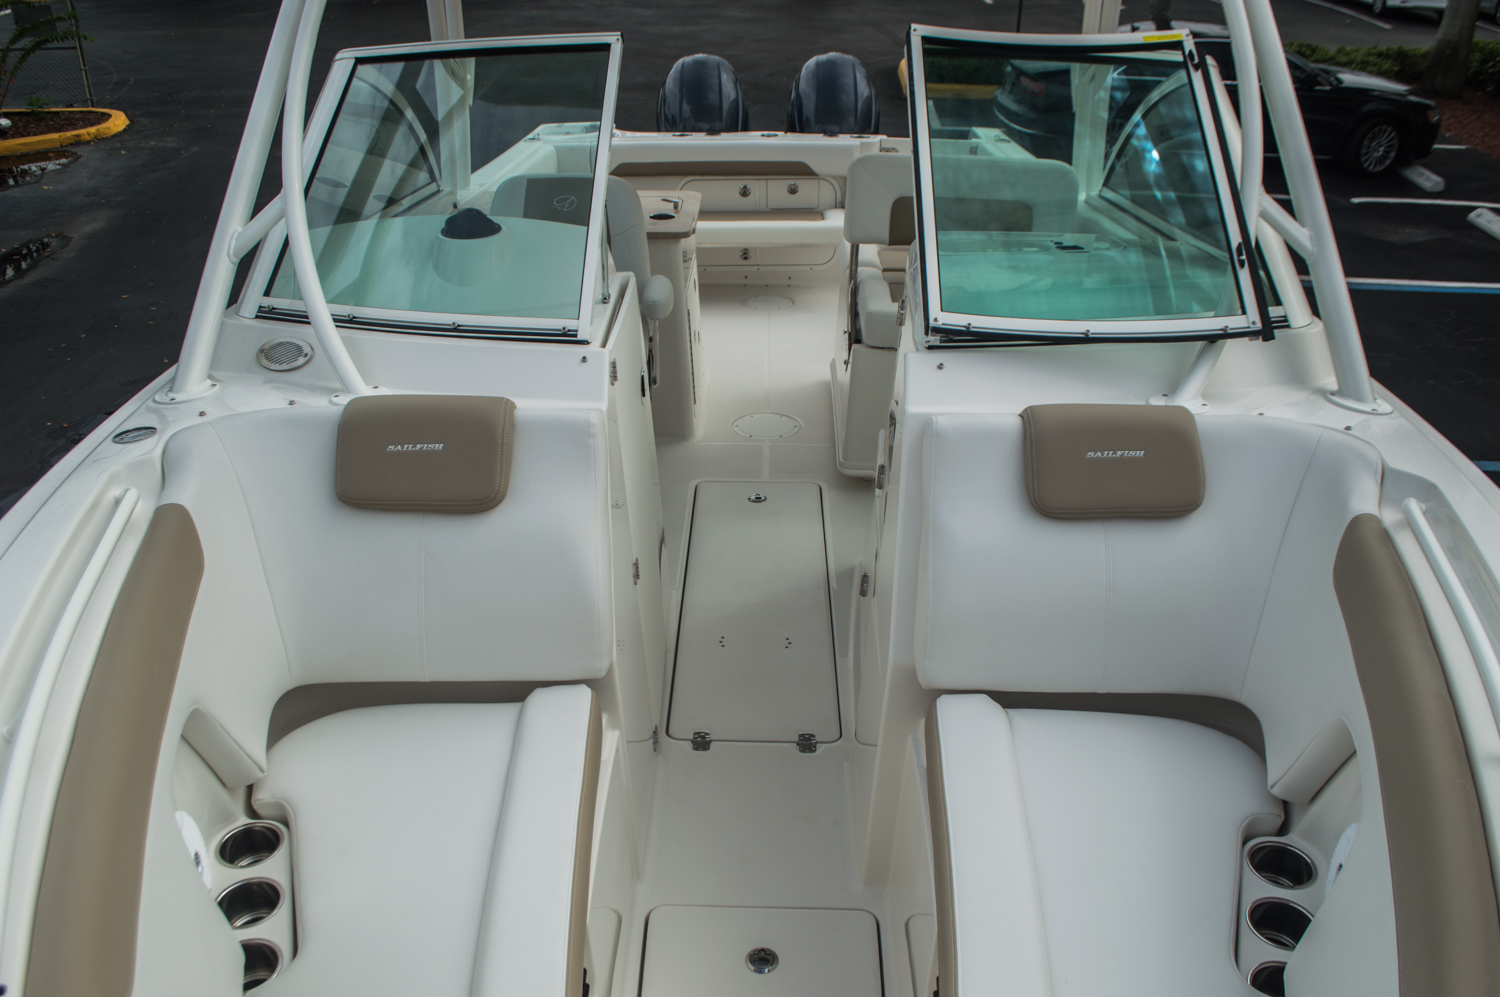 Thumbnail 19 for New 2016 Sailfish 275 Dual Console boat for sale in West Palm Beach, FL